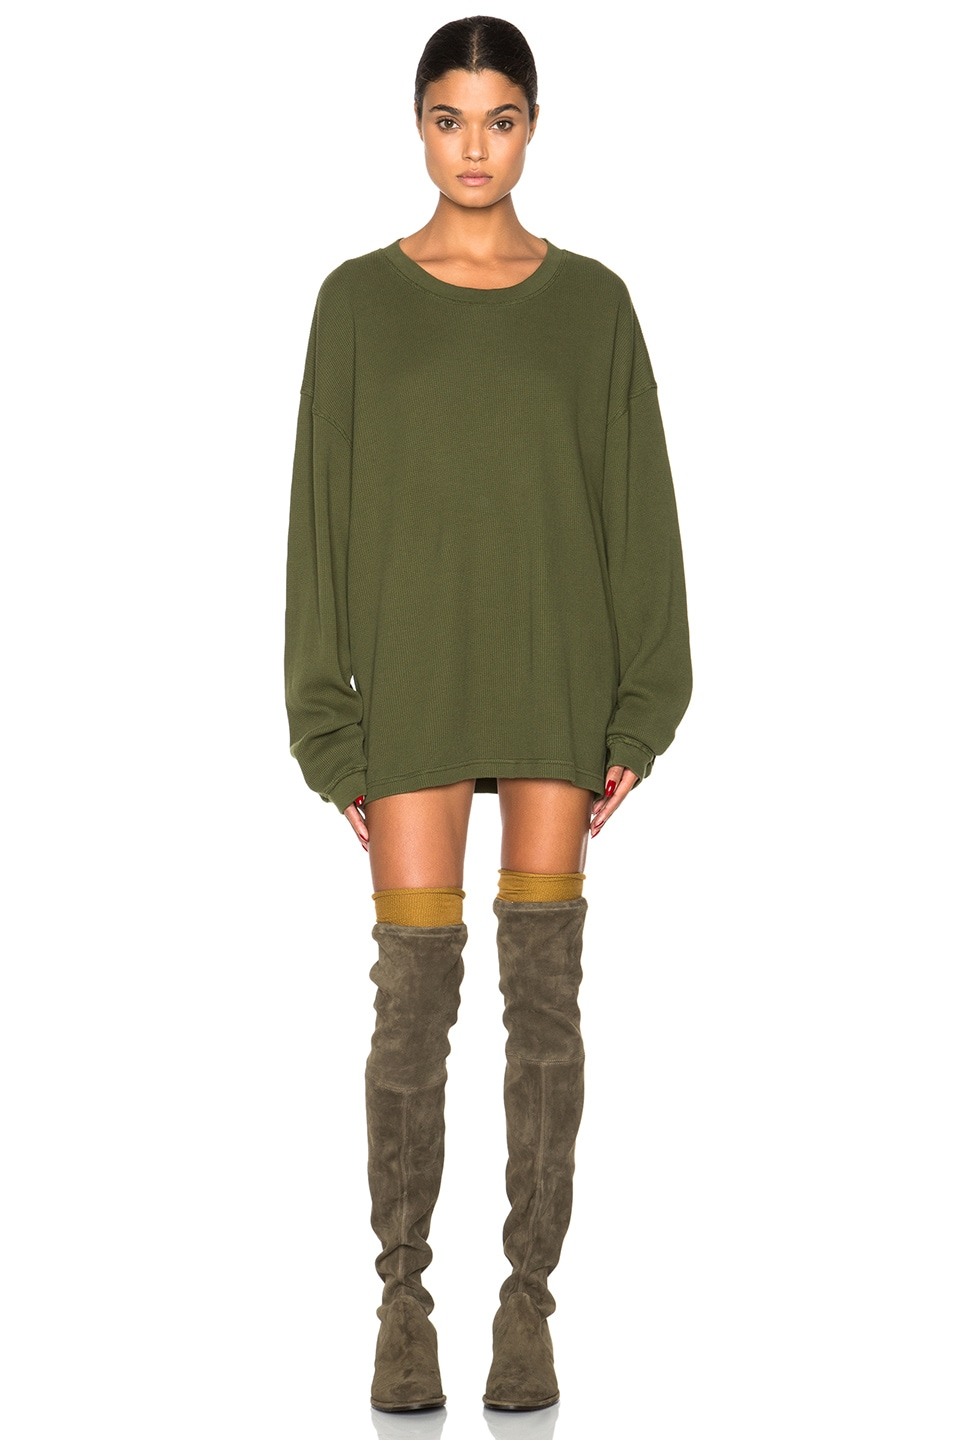 Image 1 of Kanye West x Adidas Originals Thermal Long Sleeve Shirt in Rifle Green